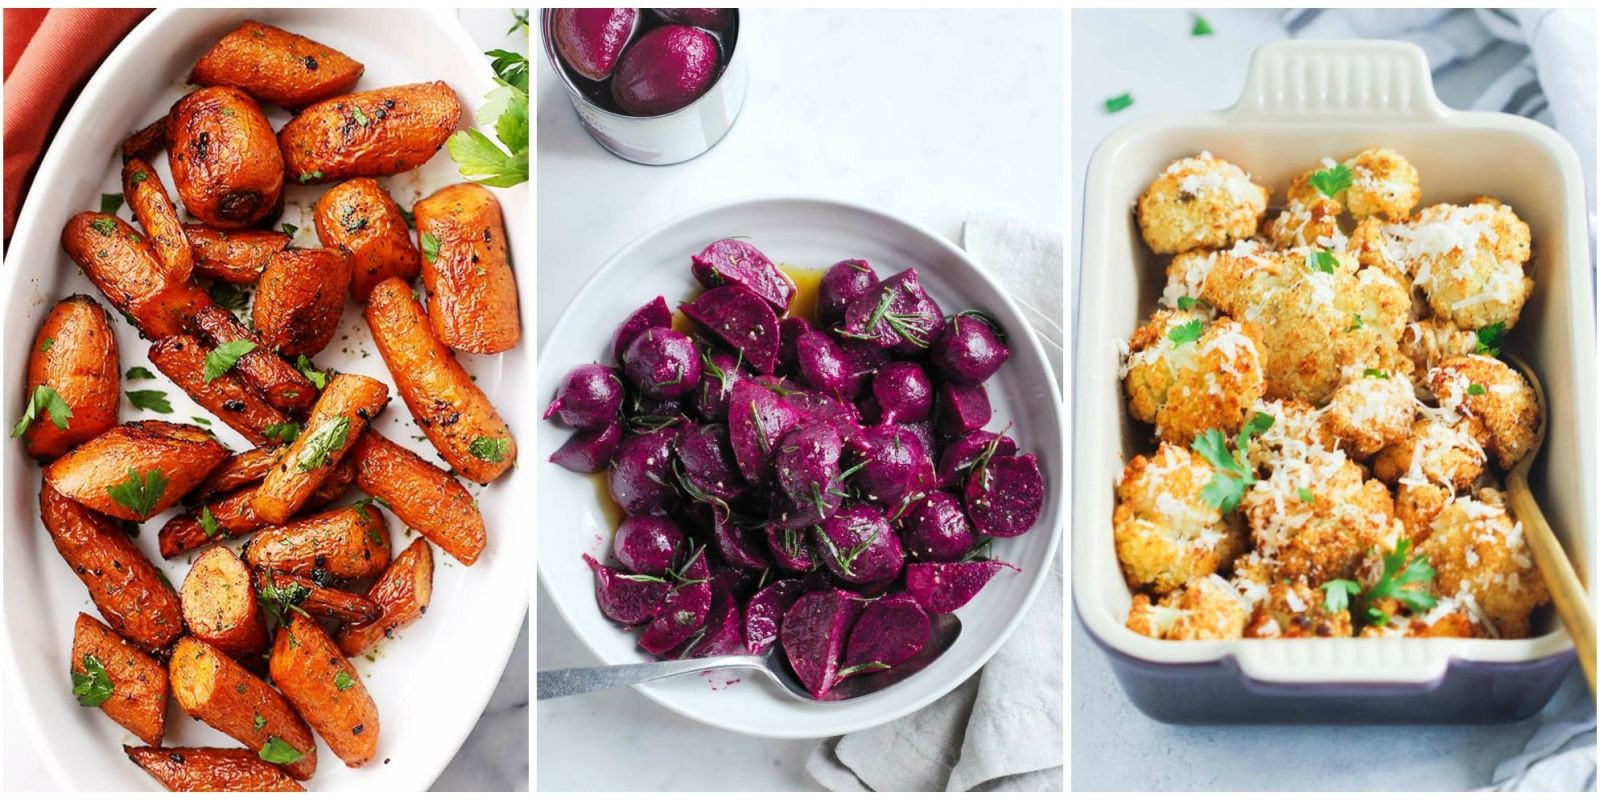 Vegetable Side Dishes For Thanksgiving  16 Thanksgiving Ve able Side Dish Recipes Holiday Side